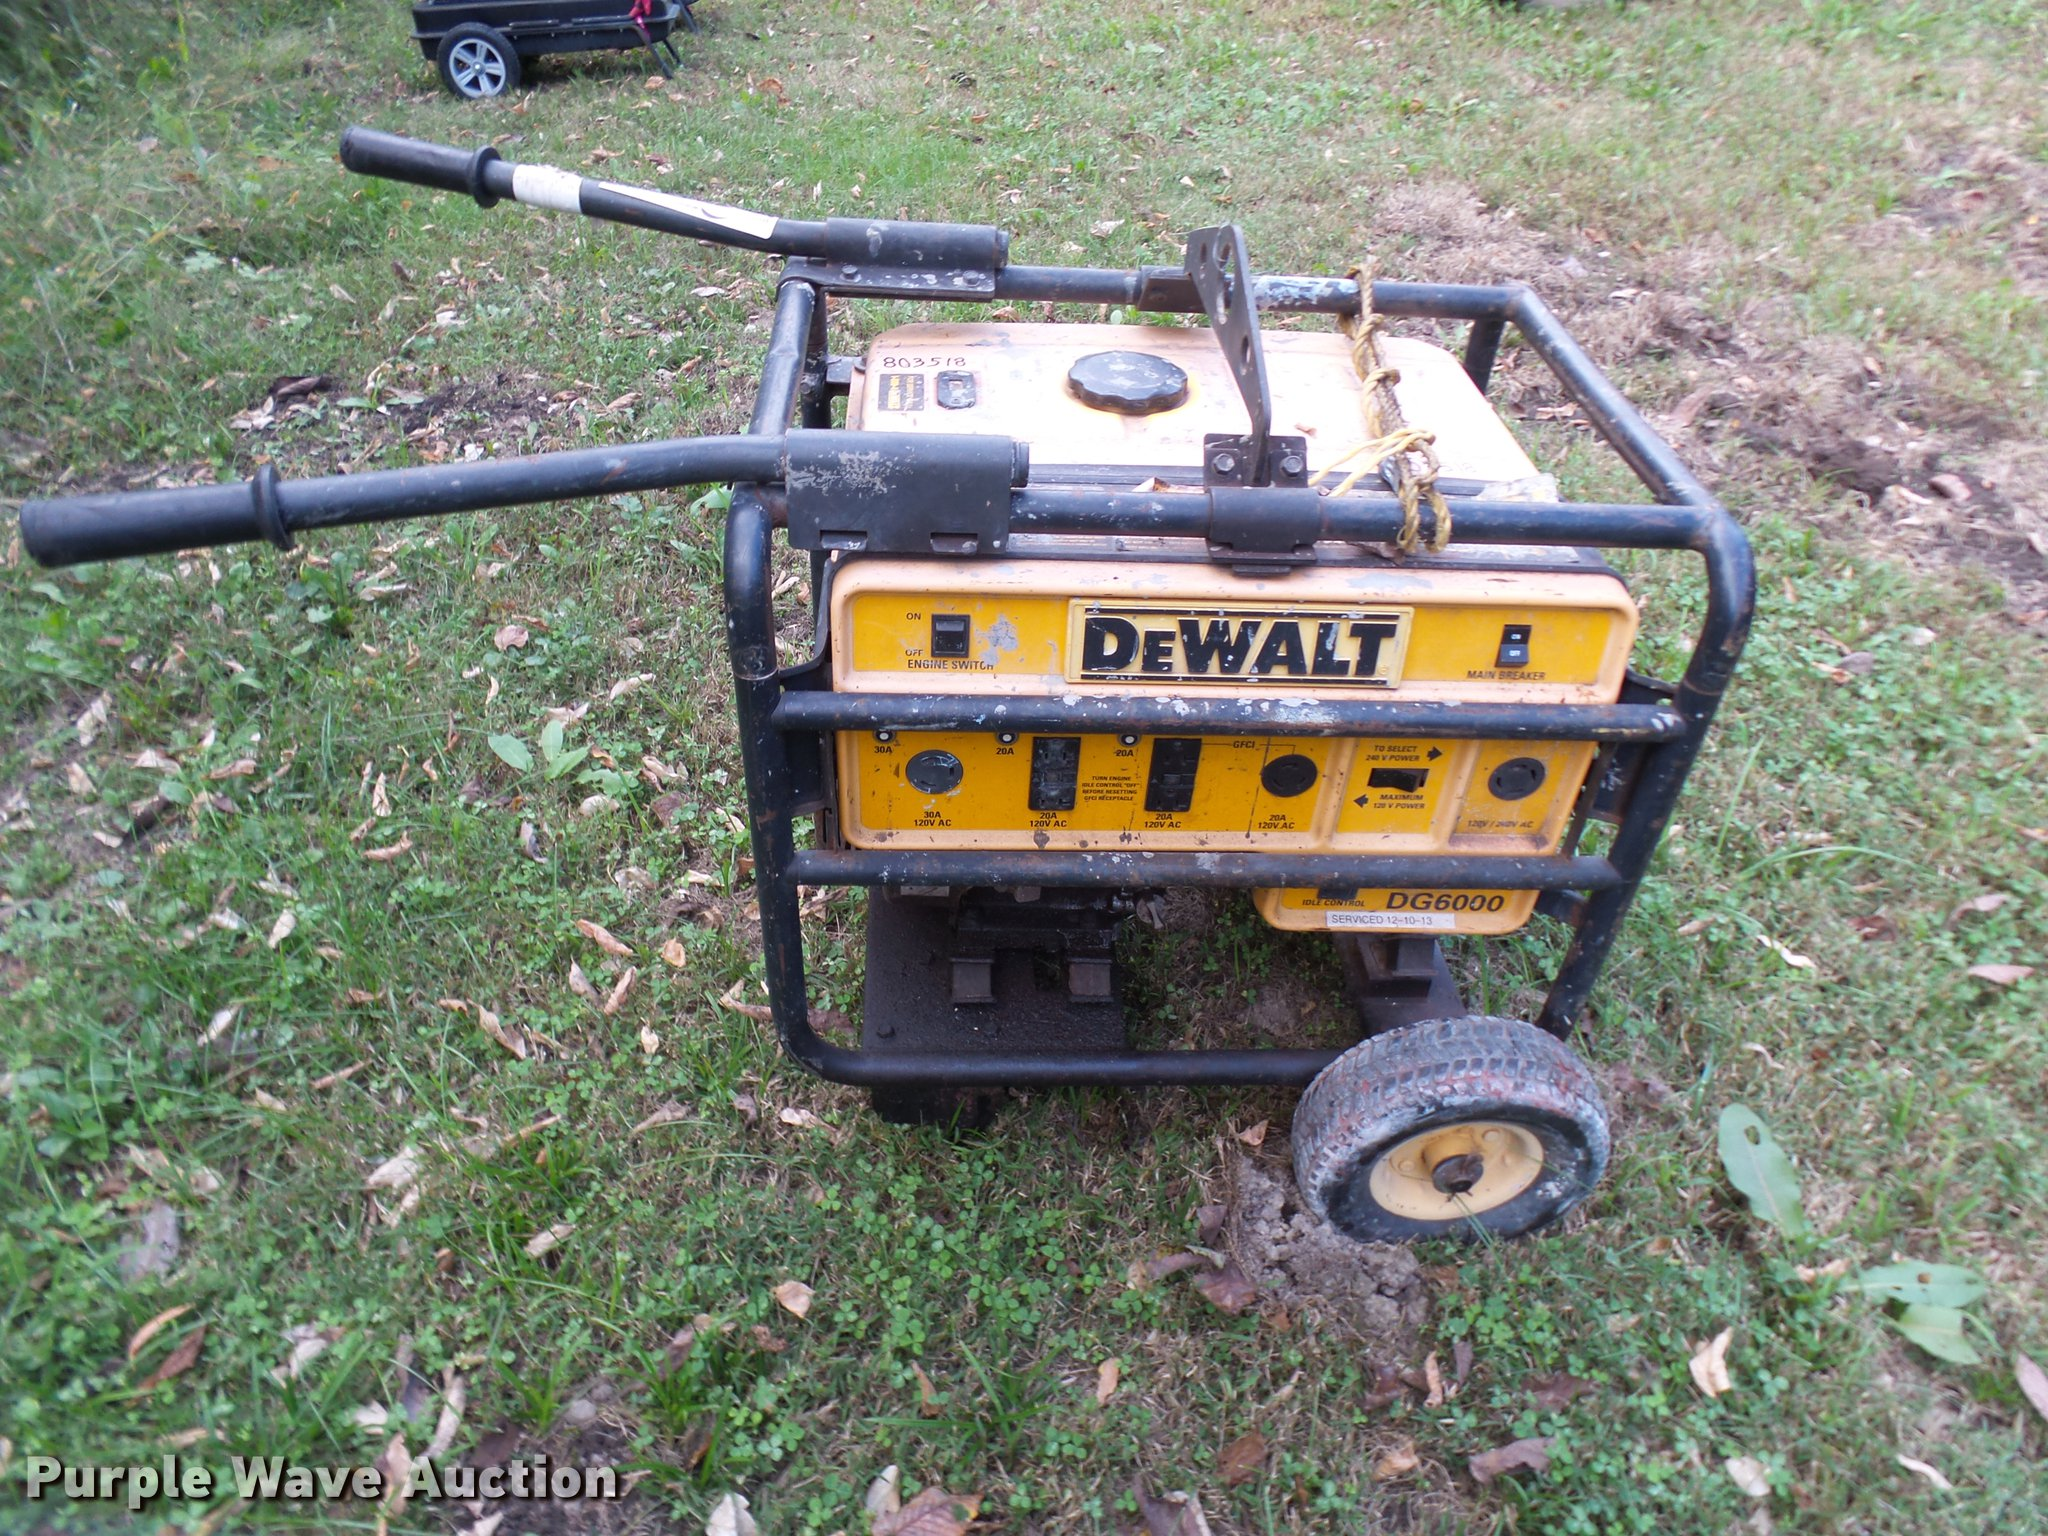 dewalt dg6000 generator item dp9651 sold november 8 veh rh purplewave com De Walt DG6000 Generator Manual dewalt generator dg6000 manual